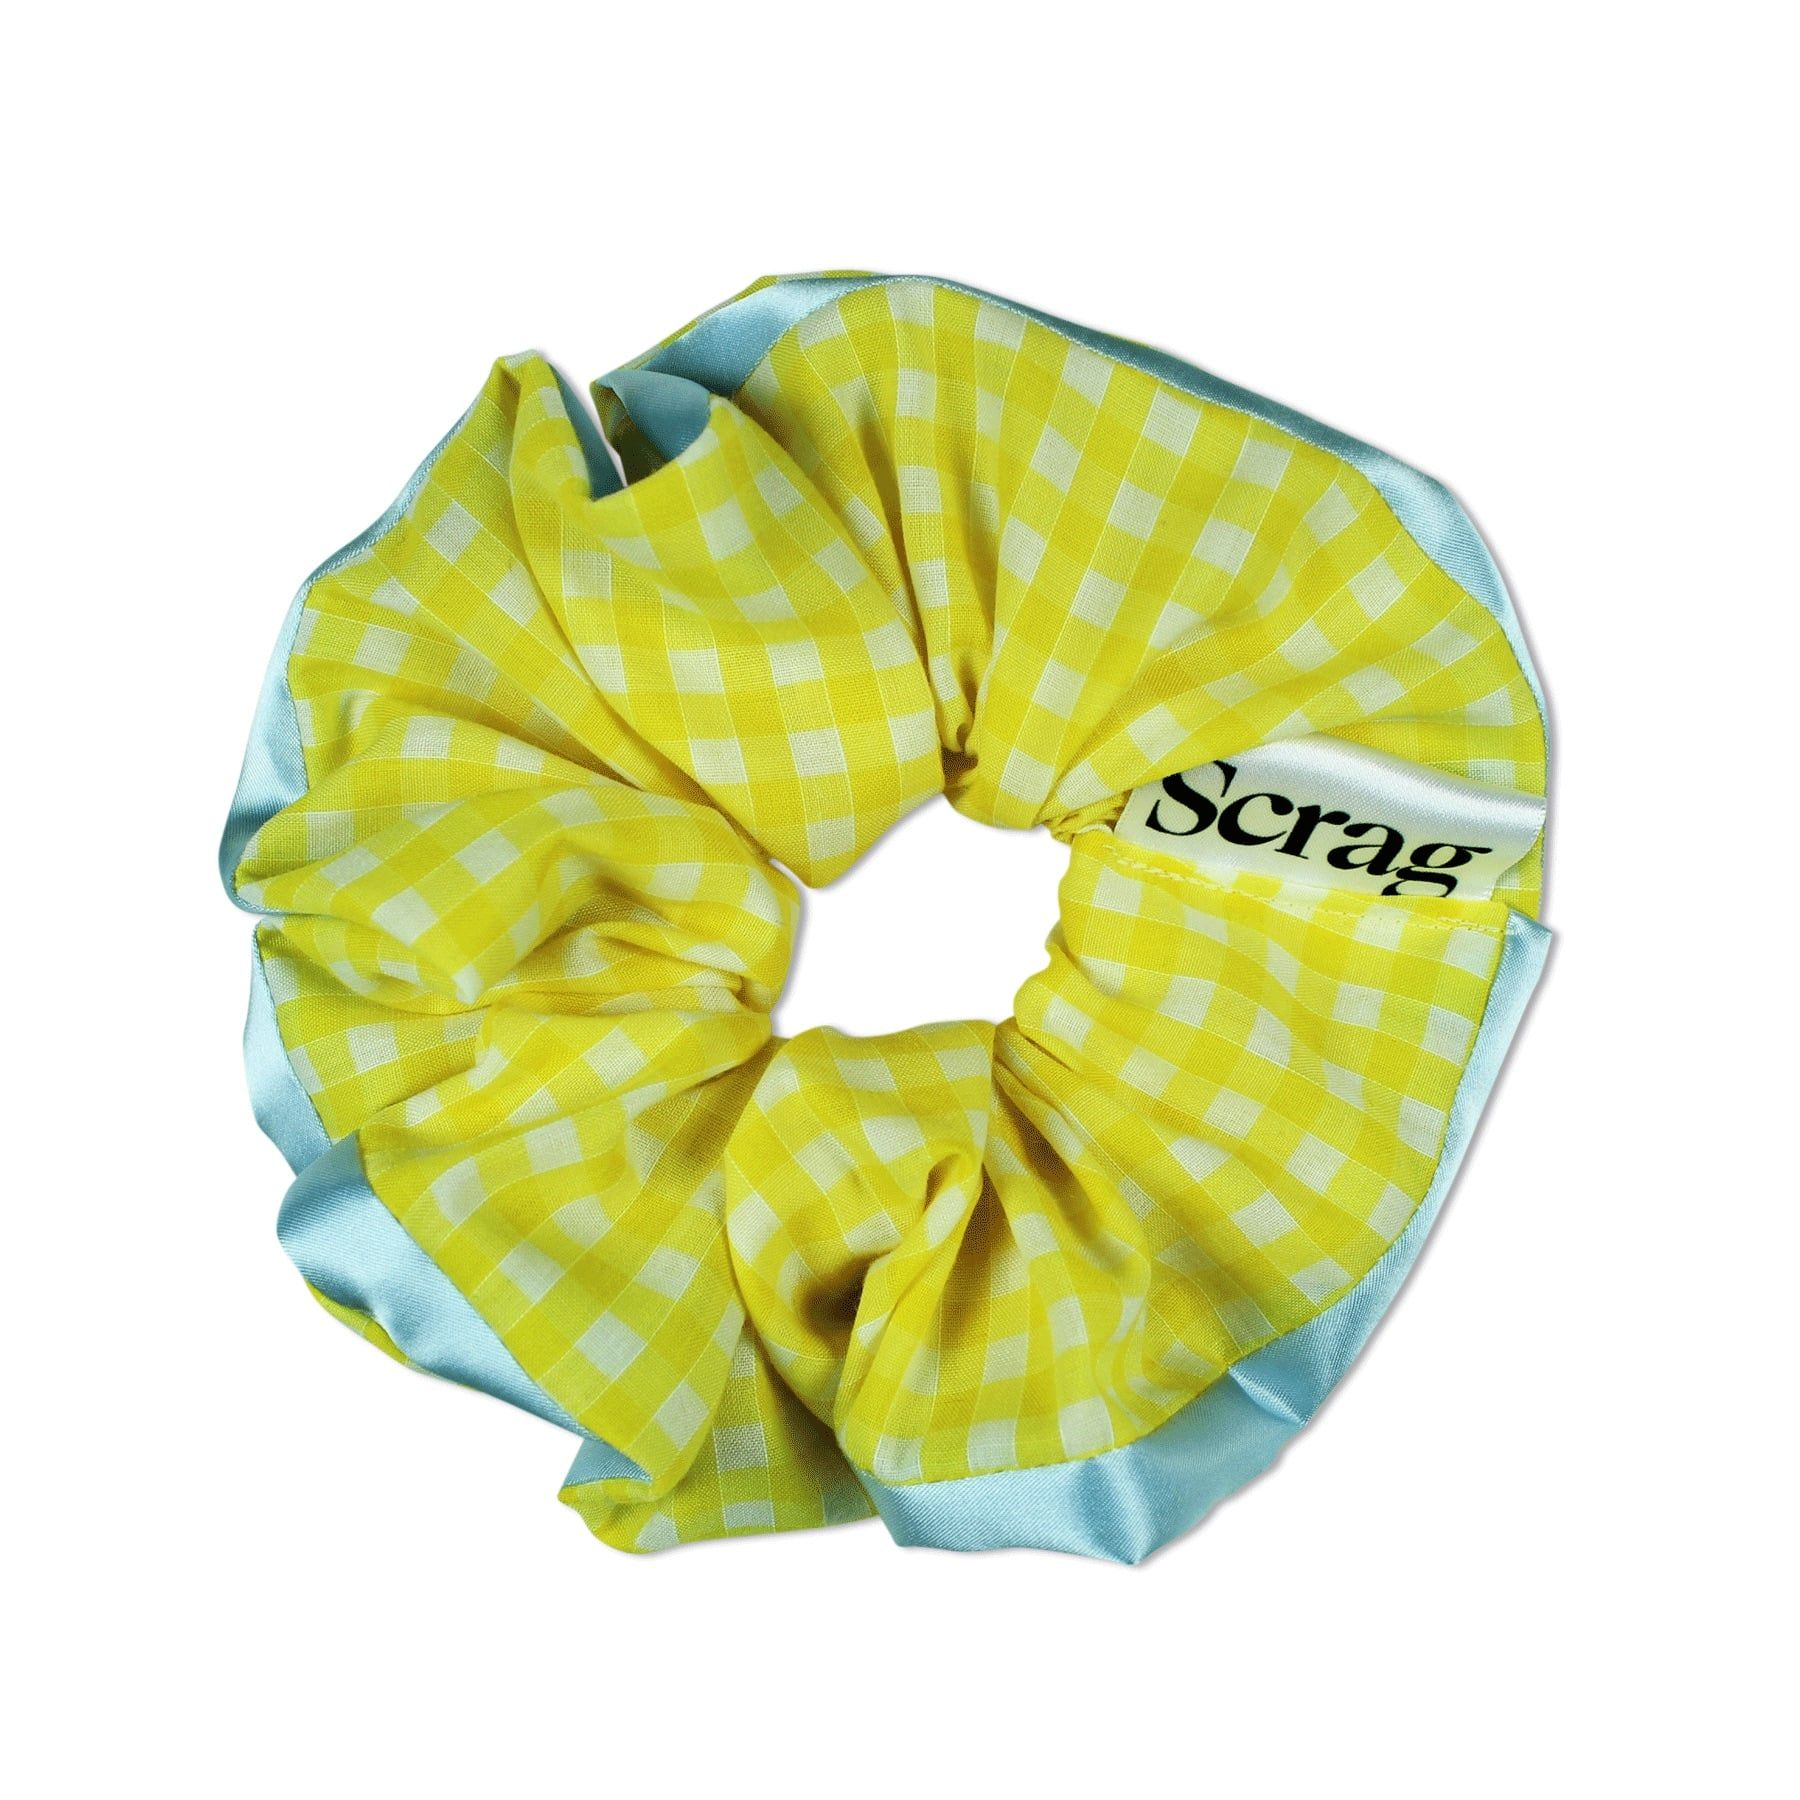 ELLIE XL - Yellow and Turquoise Scrunchie